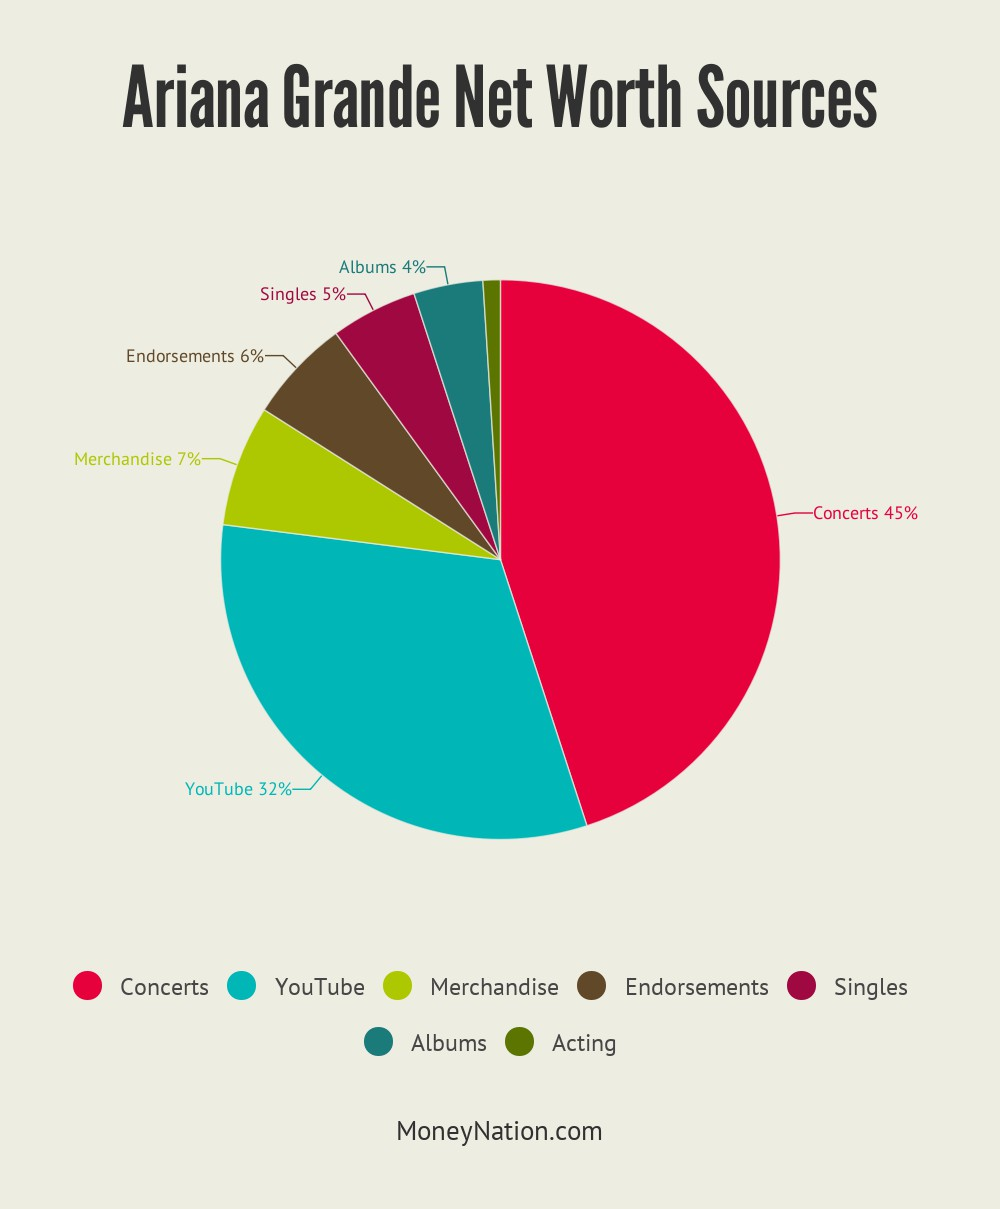 Ariana Grande Net Worth Sources